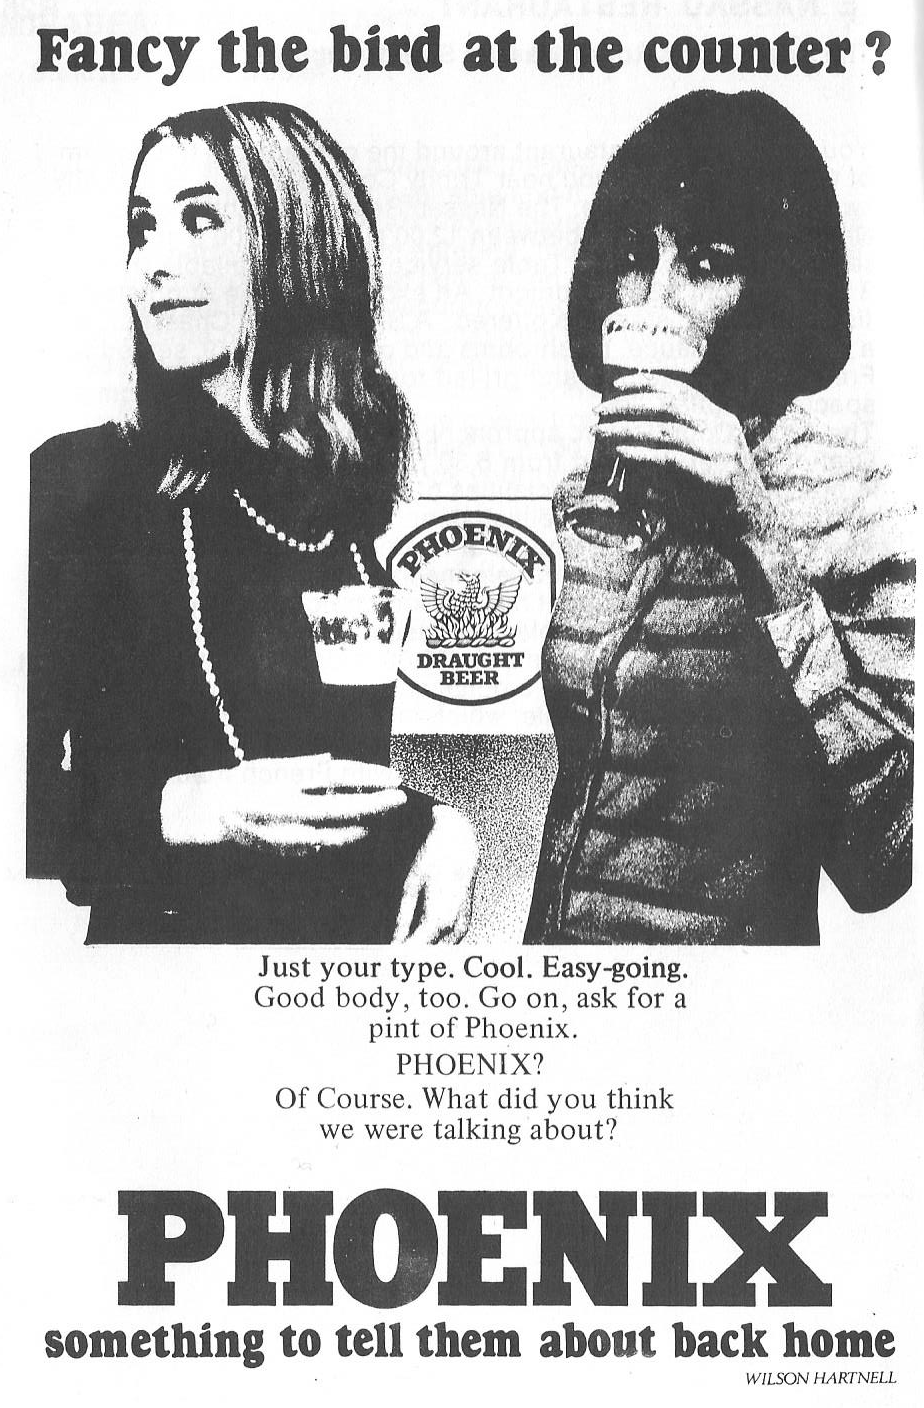 advert-phoenix-beer-1969-bird-at-counter